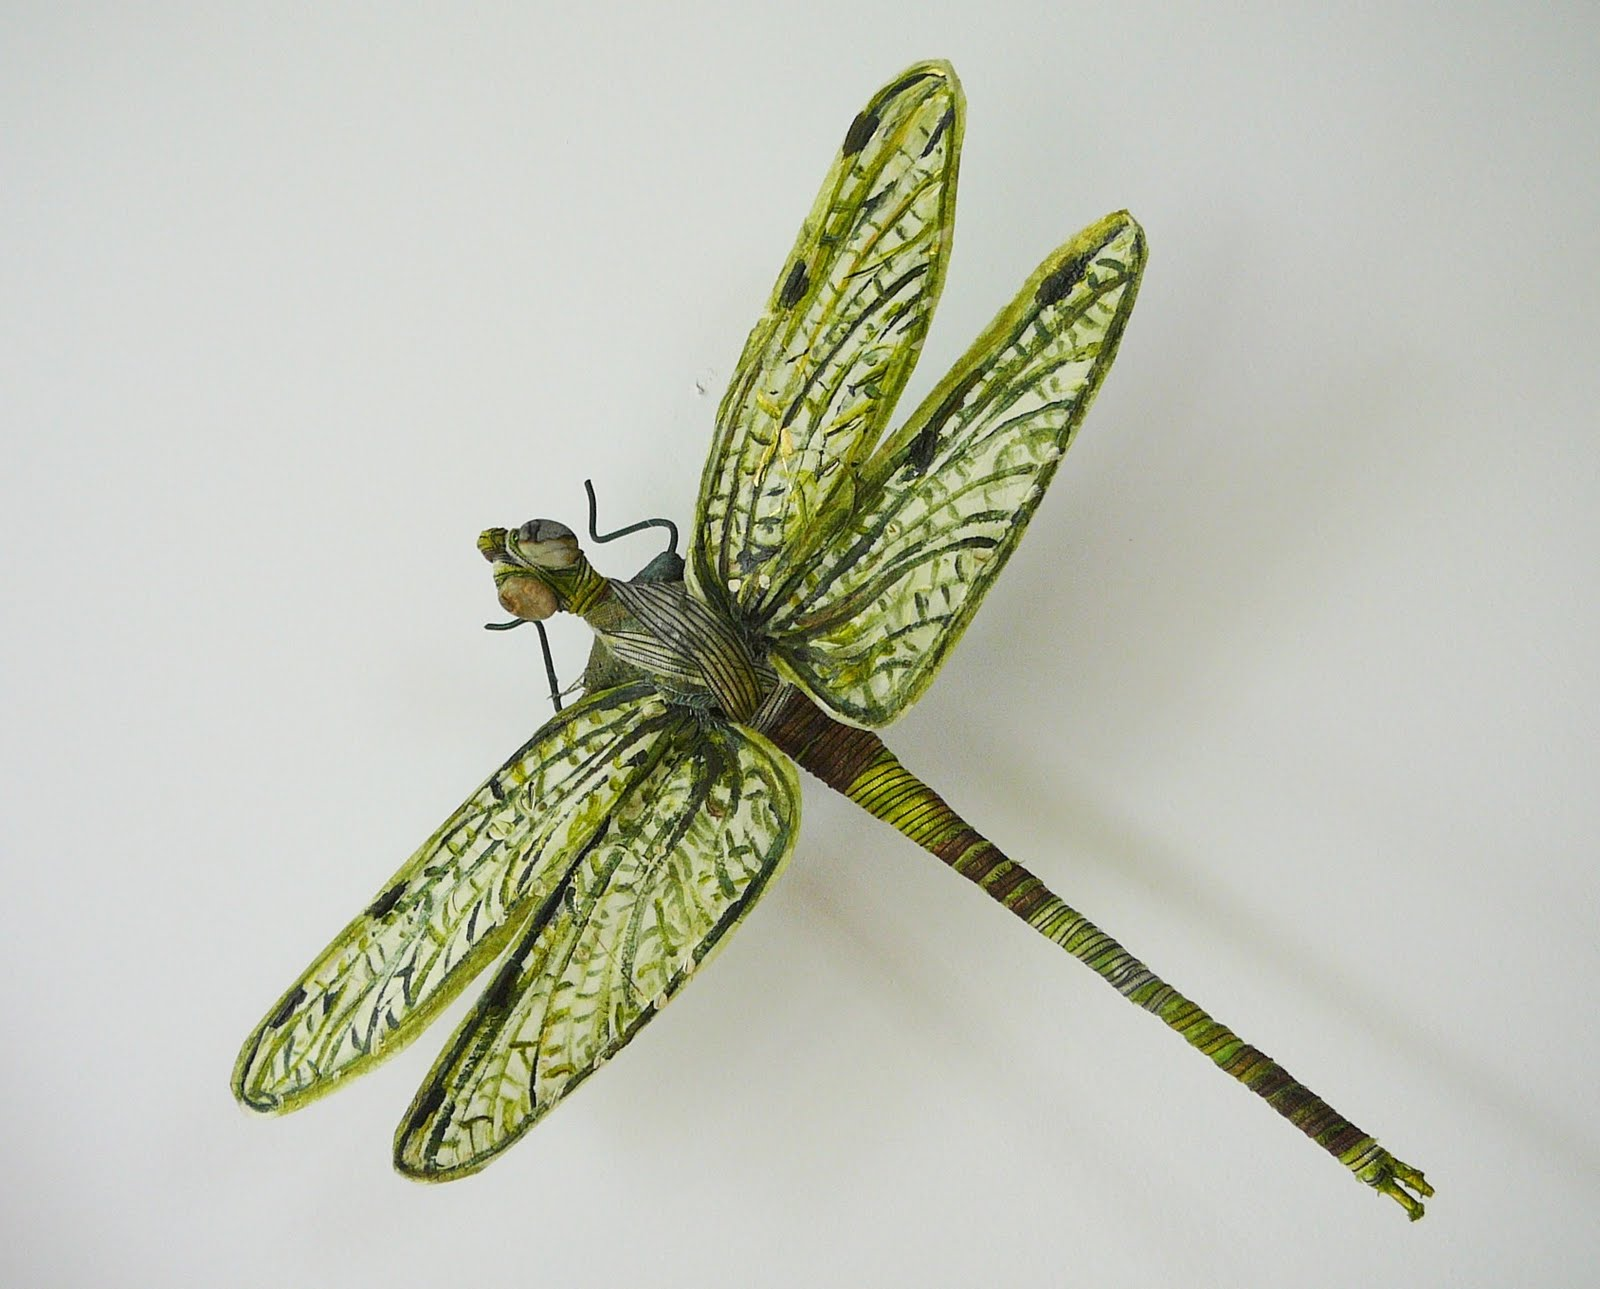 Green dragonfly pictures - photo#49